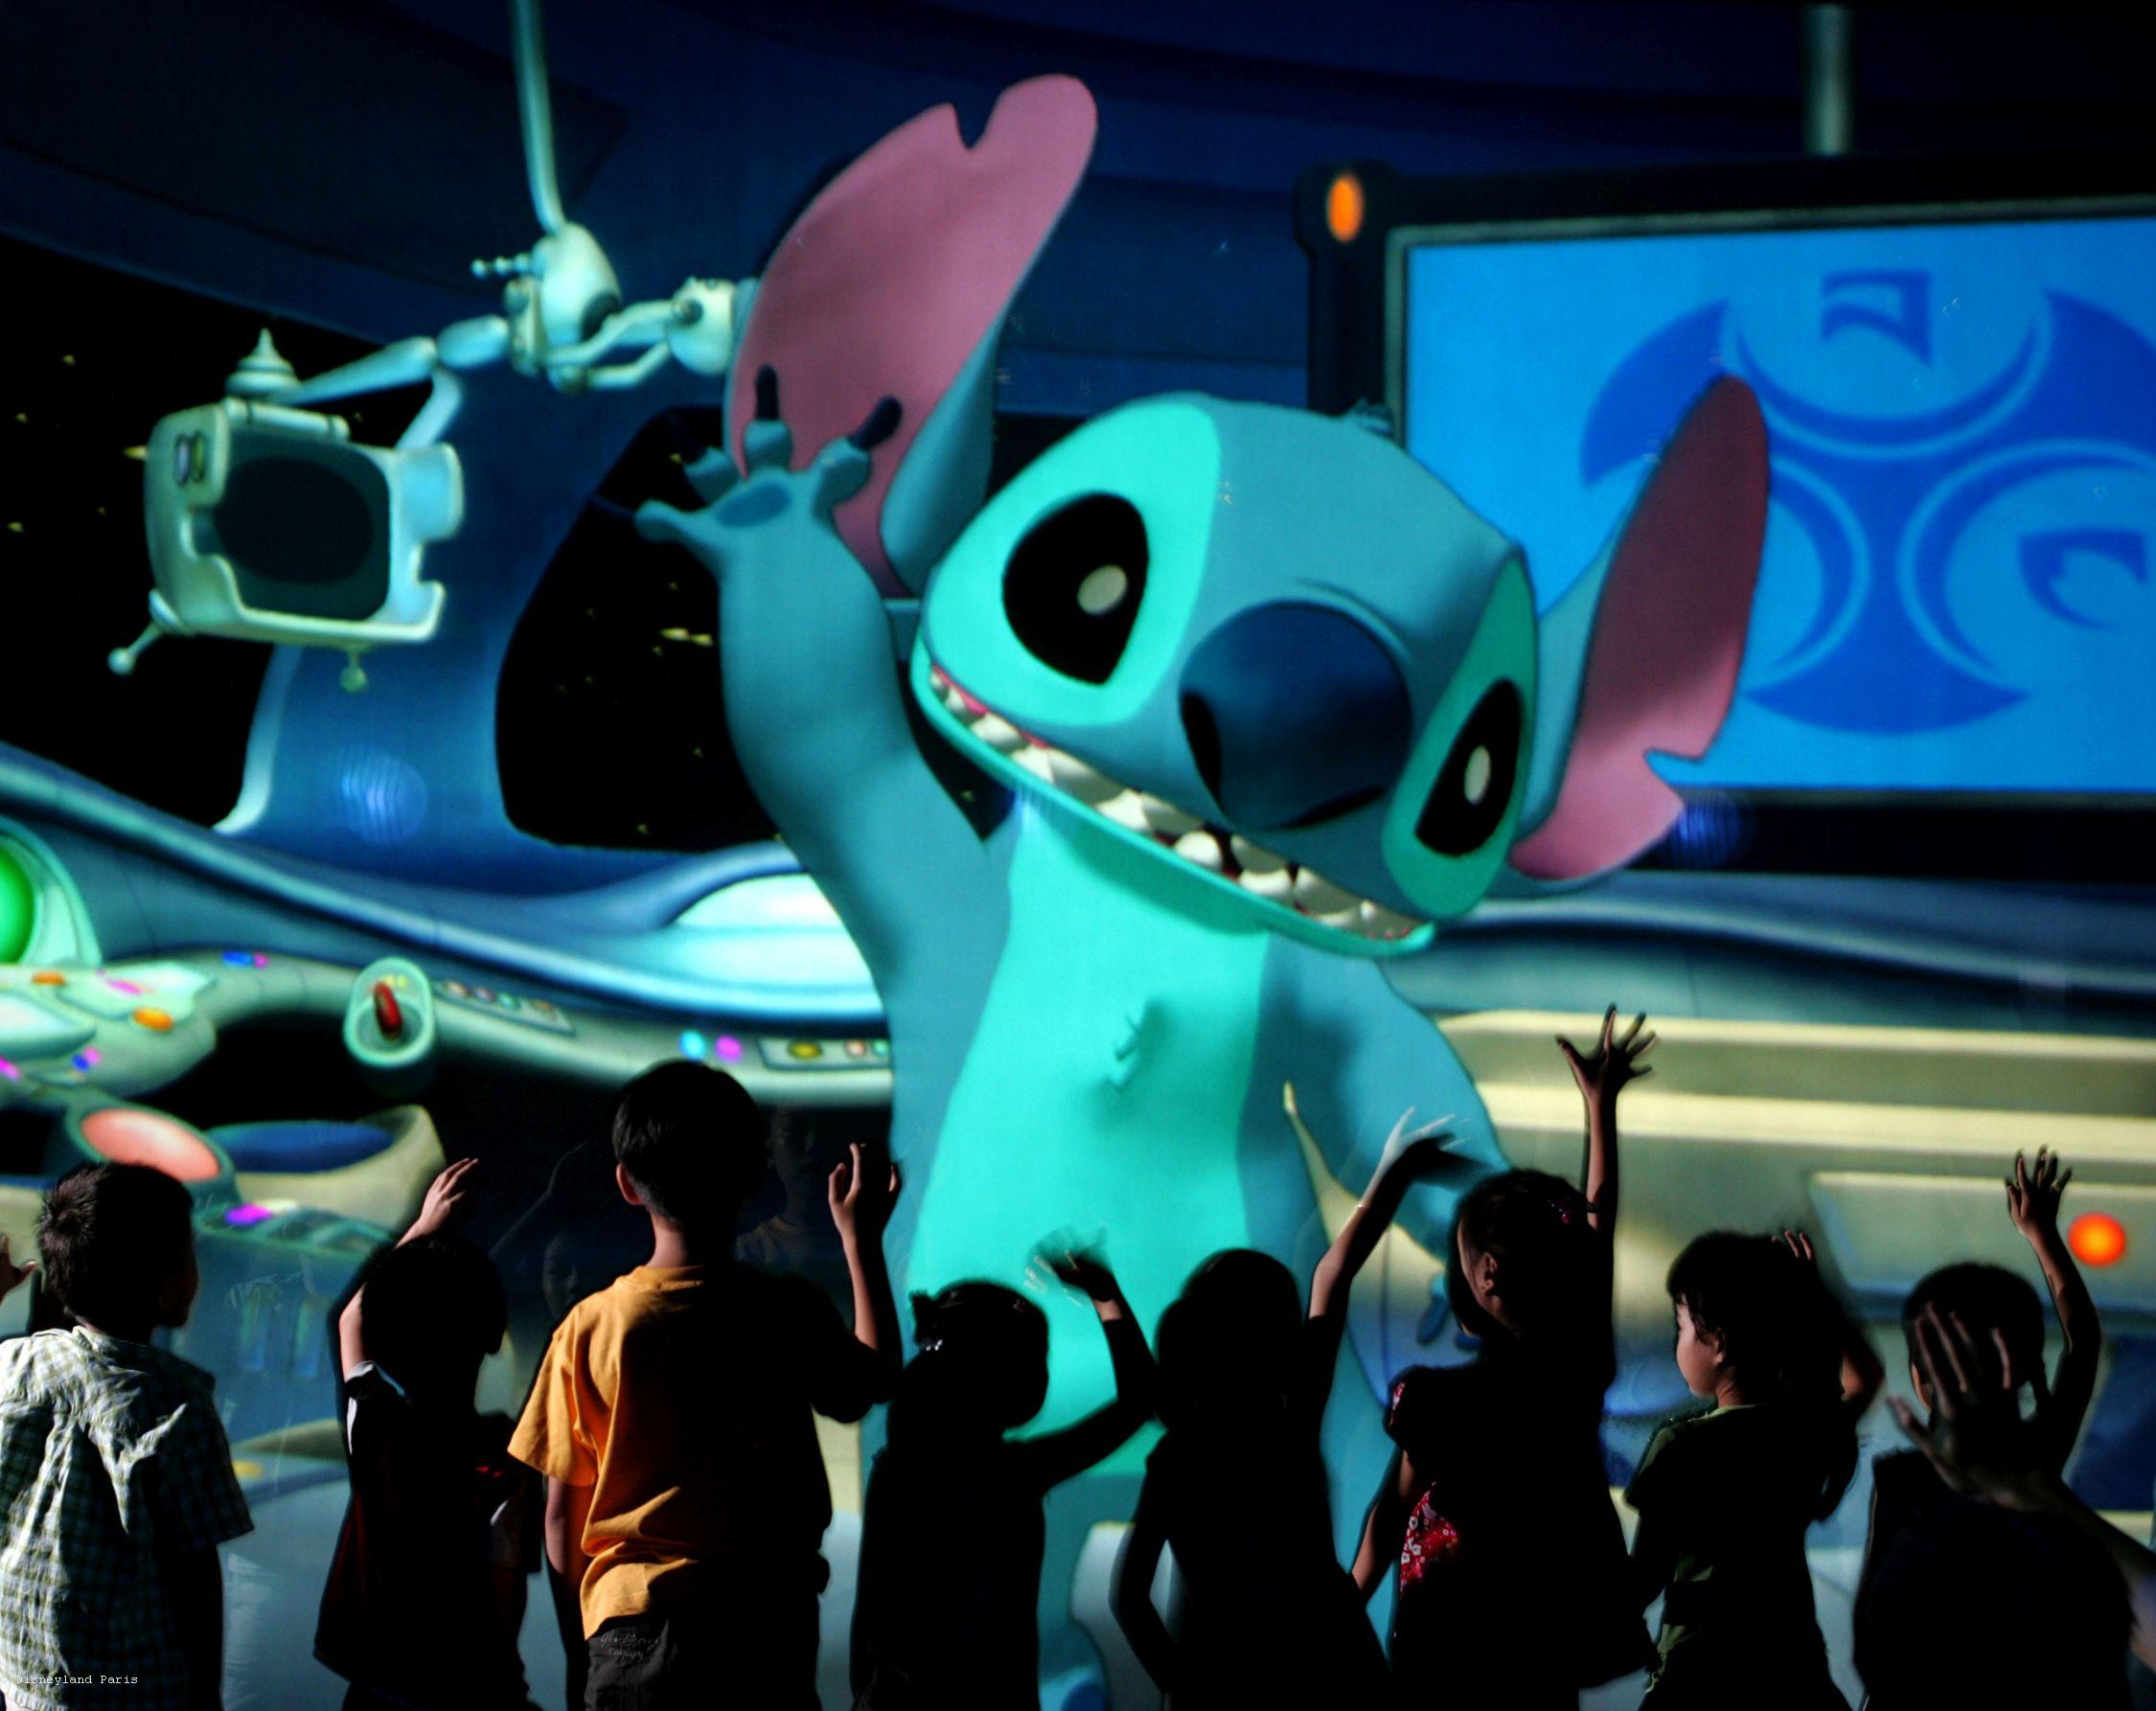 """0620AU_0369JD.jpg 0620AU_0383JD.jpg SAY HELLO TO 'STITCH': In this photo taken inside """"Stitch Encounter,"""" the tiny and talkative alien known as """"Stitch"""" waves to guests as they enter Space Control Traffic Center at Hong Kong Disneyland.  The mischievous blue alien, who debuted in Disney's hit animated comedy """"Lilo & Stitch,"""" stars in the new cutting-edge attraction where park guests, seated in an intimate theatre, carry on real-time conversations with the famous animated character.  The jaw-dropping technology allows for Disney fun like never before.  Stitch, aka """"Experiment 626,"""" can talk to guests, play games and interact with them in surprising new ways.  When it officially opens to guests July 13, 2006, Stitch Encounter will be presented daily in three languages – Cantonese, English and Putonghua.  Hong Kong Disneyland is the first and only Disney theme park in the world where guests can experience Stitch Encounter. (Jimmy DeFlippo, photographer)"""